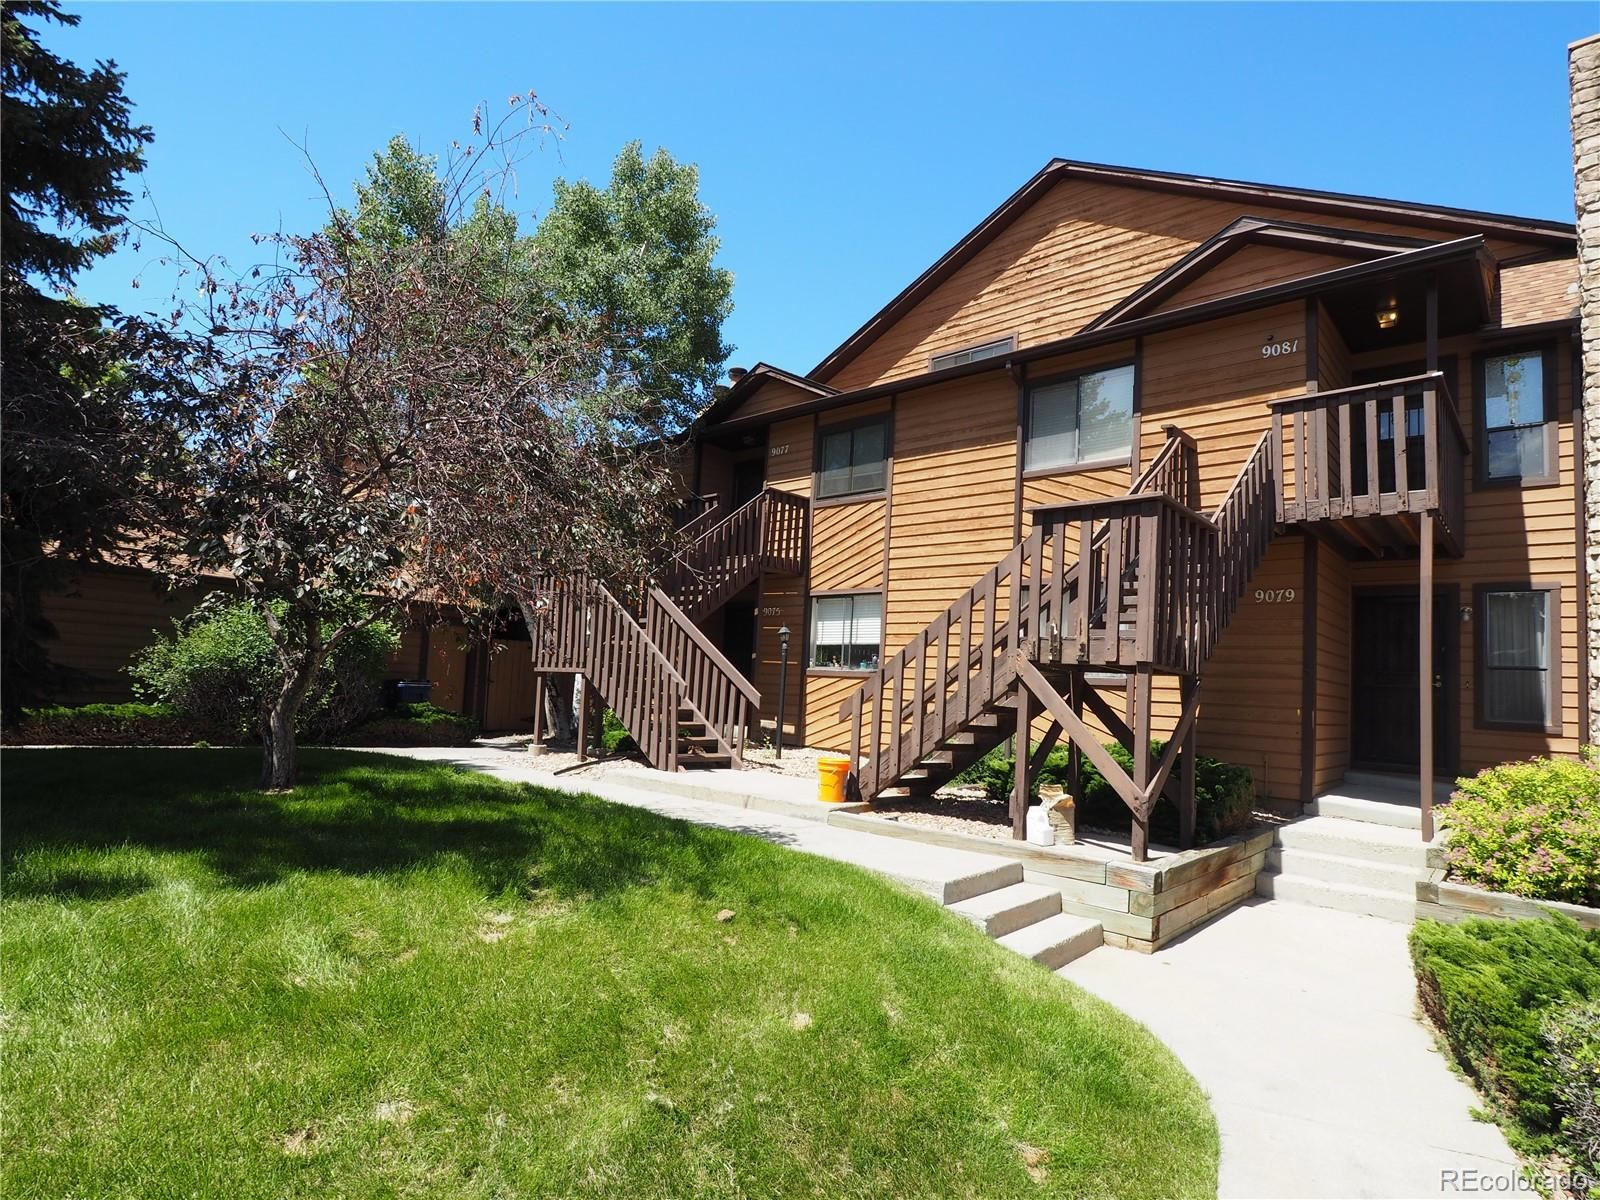 9077 W 88th Circle, Westminster, CO 80021 - #: 8360426